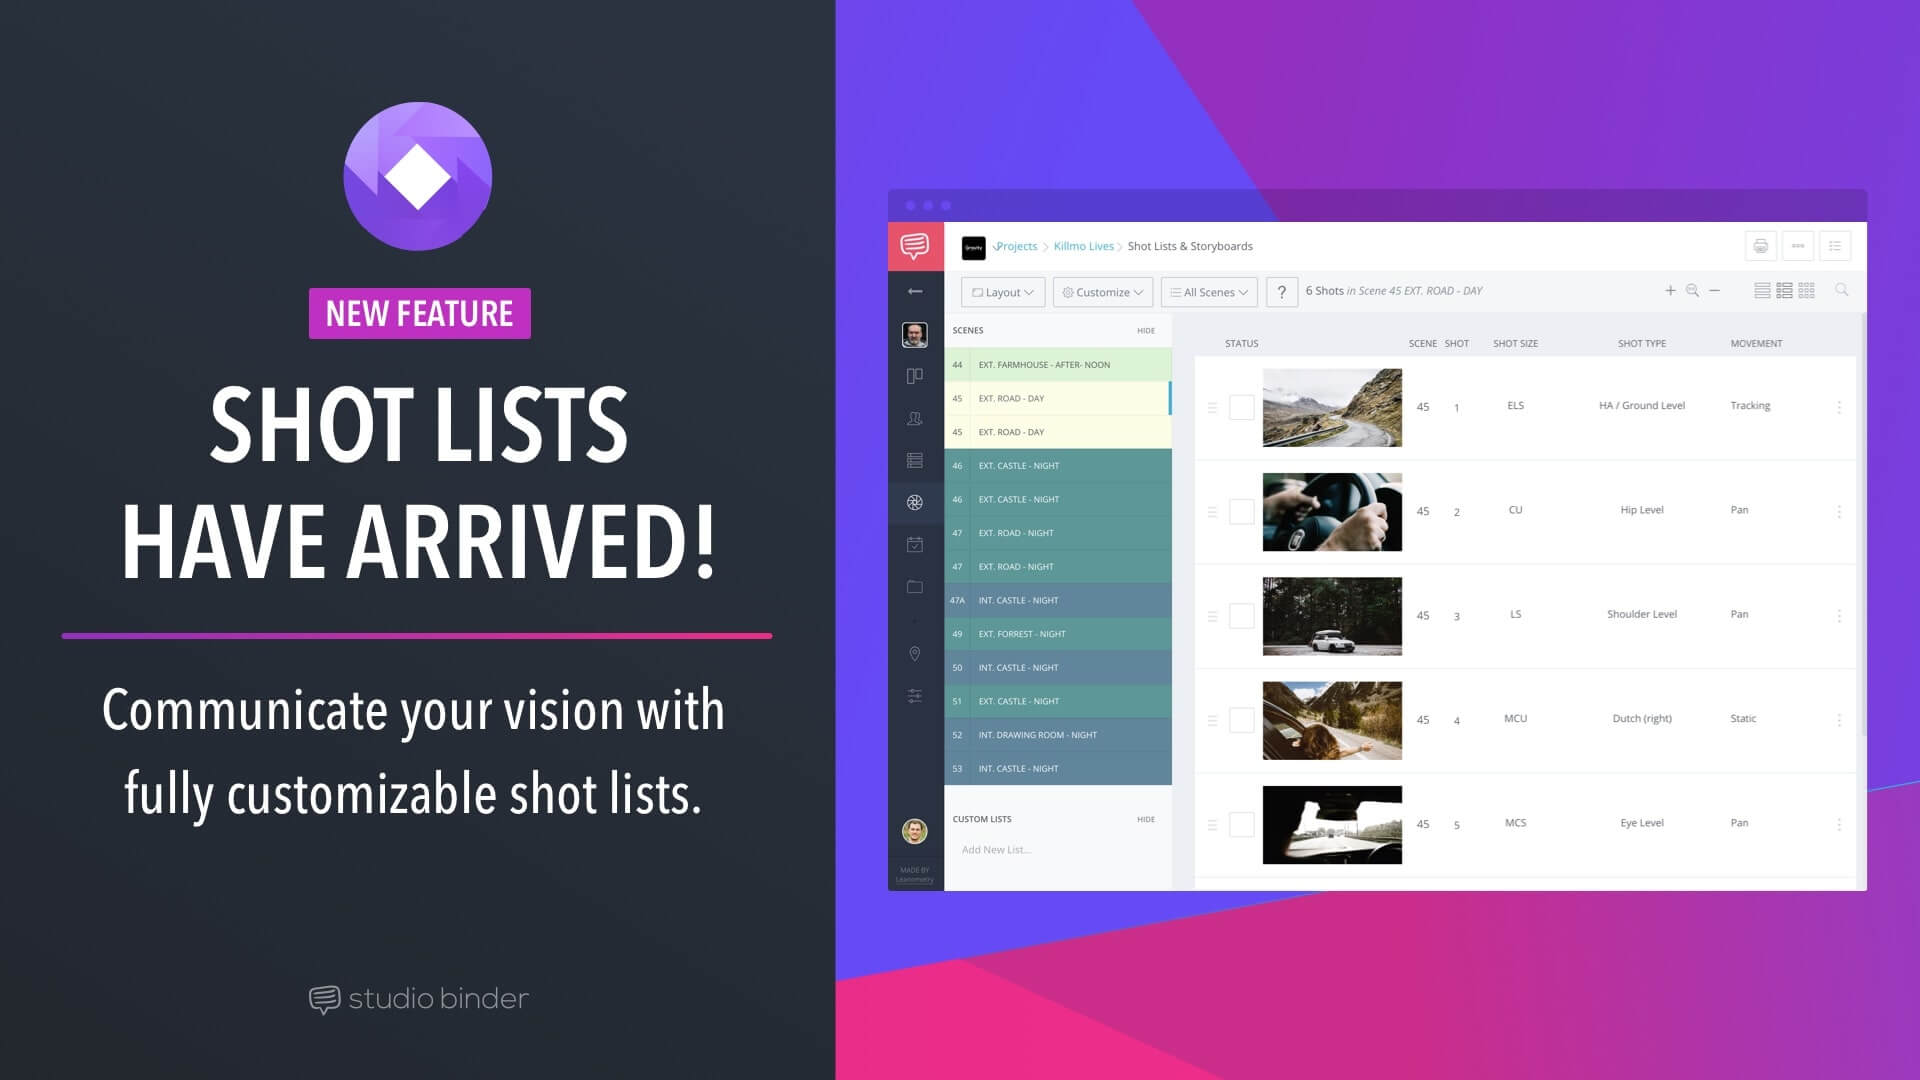 Introducing Shot Lists - Complete Customization, Intuitive Interface - Featured - StudioBinder